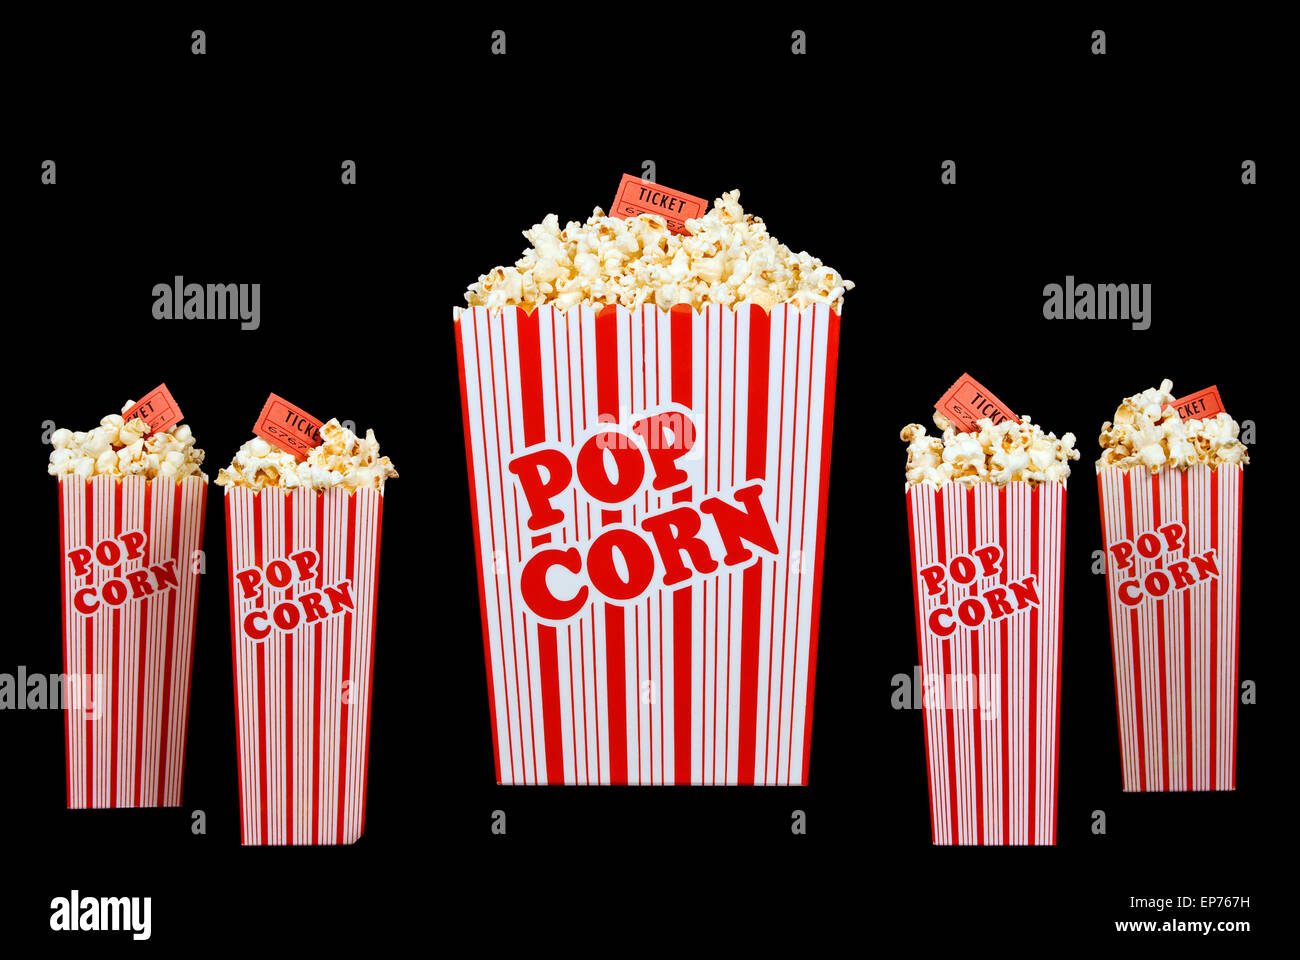 Family Time At The Movies With Popcorn In Buckets With Red Tickets - Stock Image